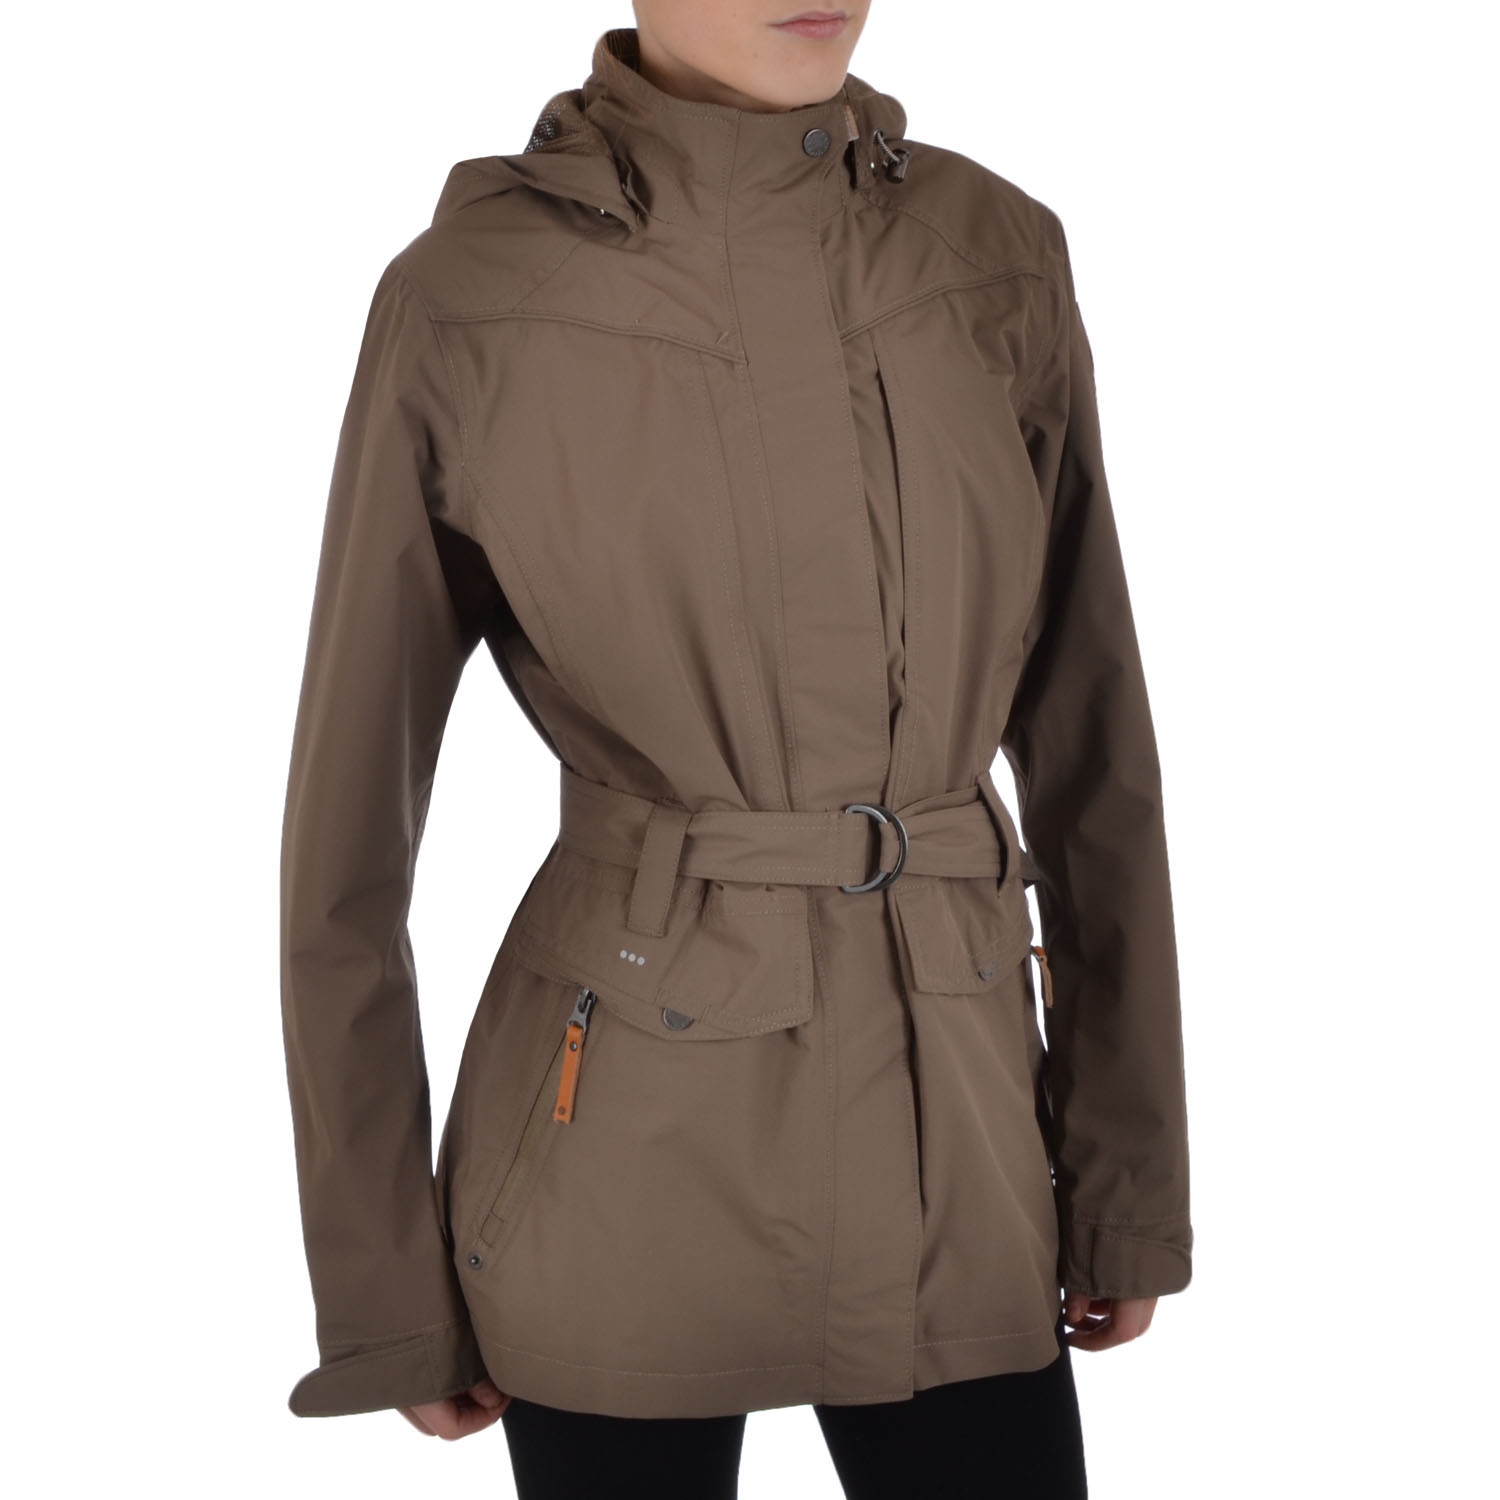 With extended sizes (including plus size and petite) and styles designed just for women, our top-quality outdoor gear and clothing from favorite brands will keep you comfortable in a variety of pursuits.